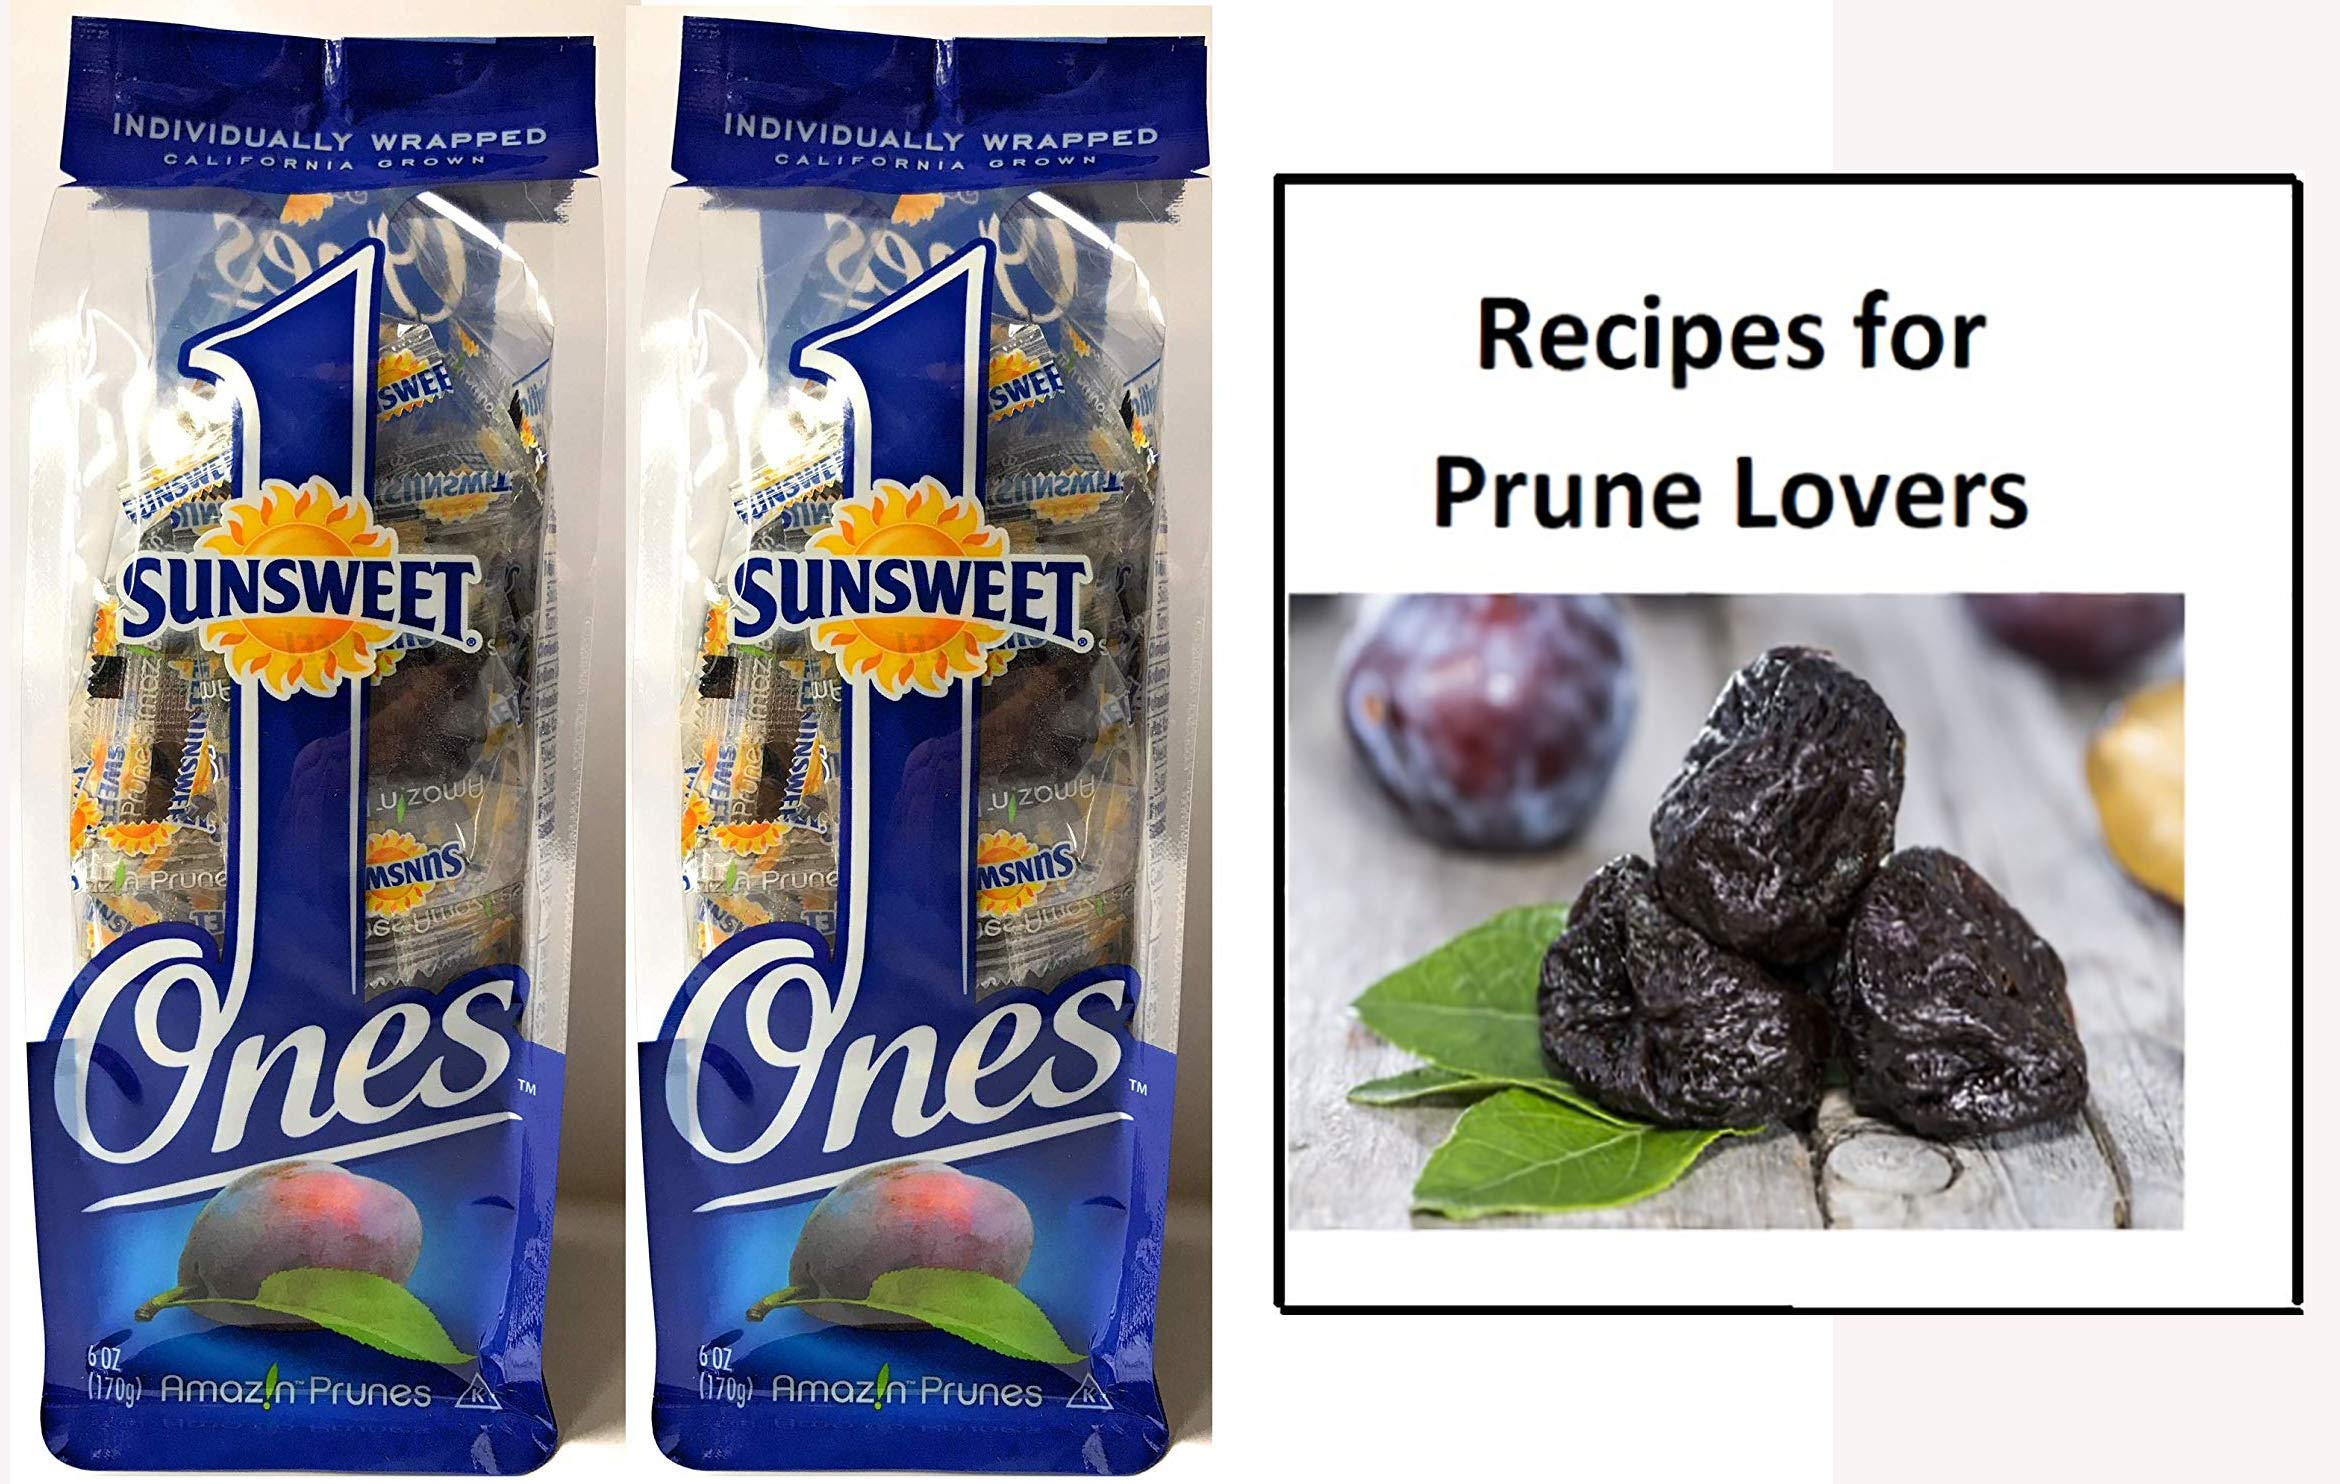 Sunsweet Ones California Individually Wrapped Pitted Prunes - 2 Packages (each package is 6 ounces) PLUS a Prune Recipe - GREAT VALUE! by Sunsweet